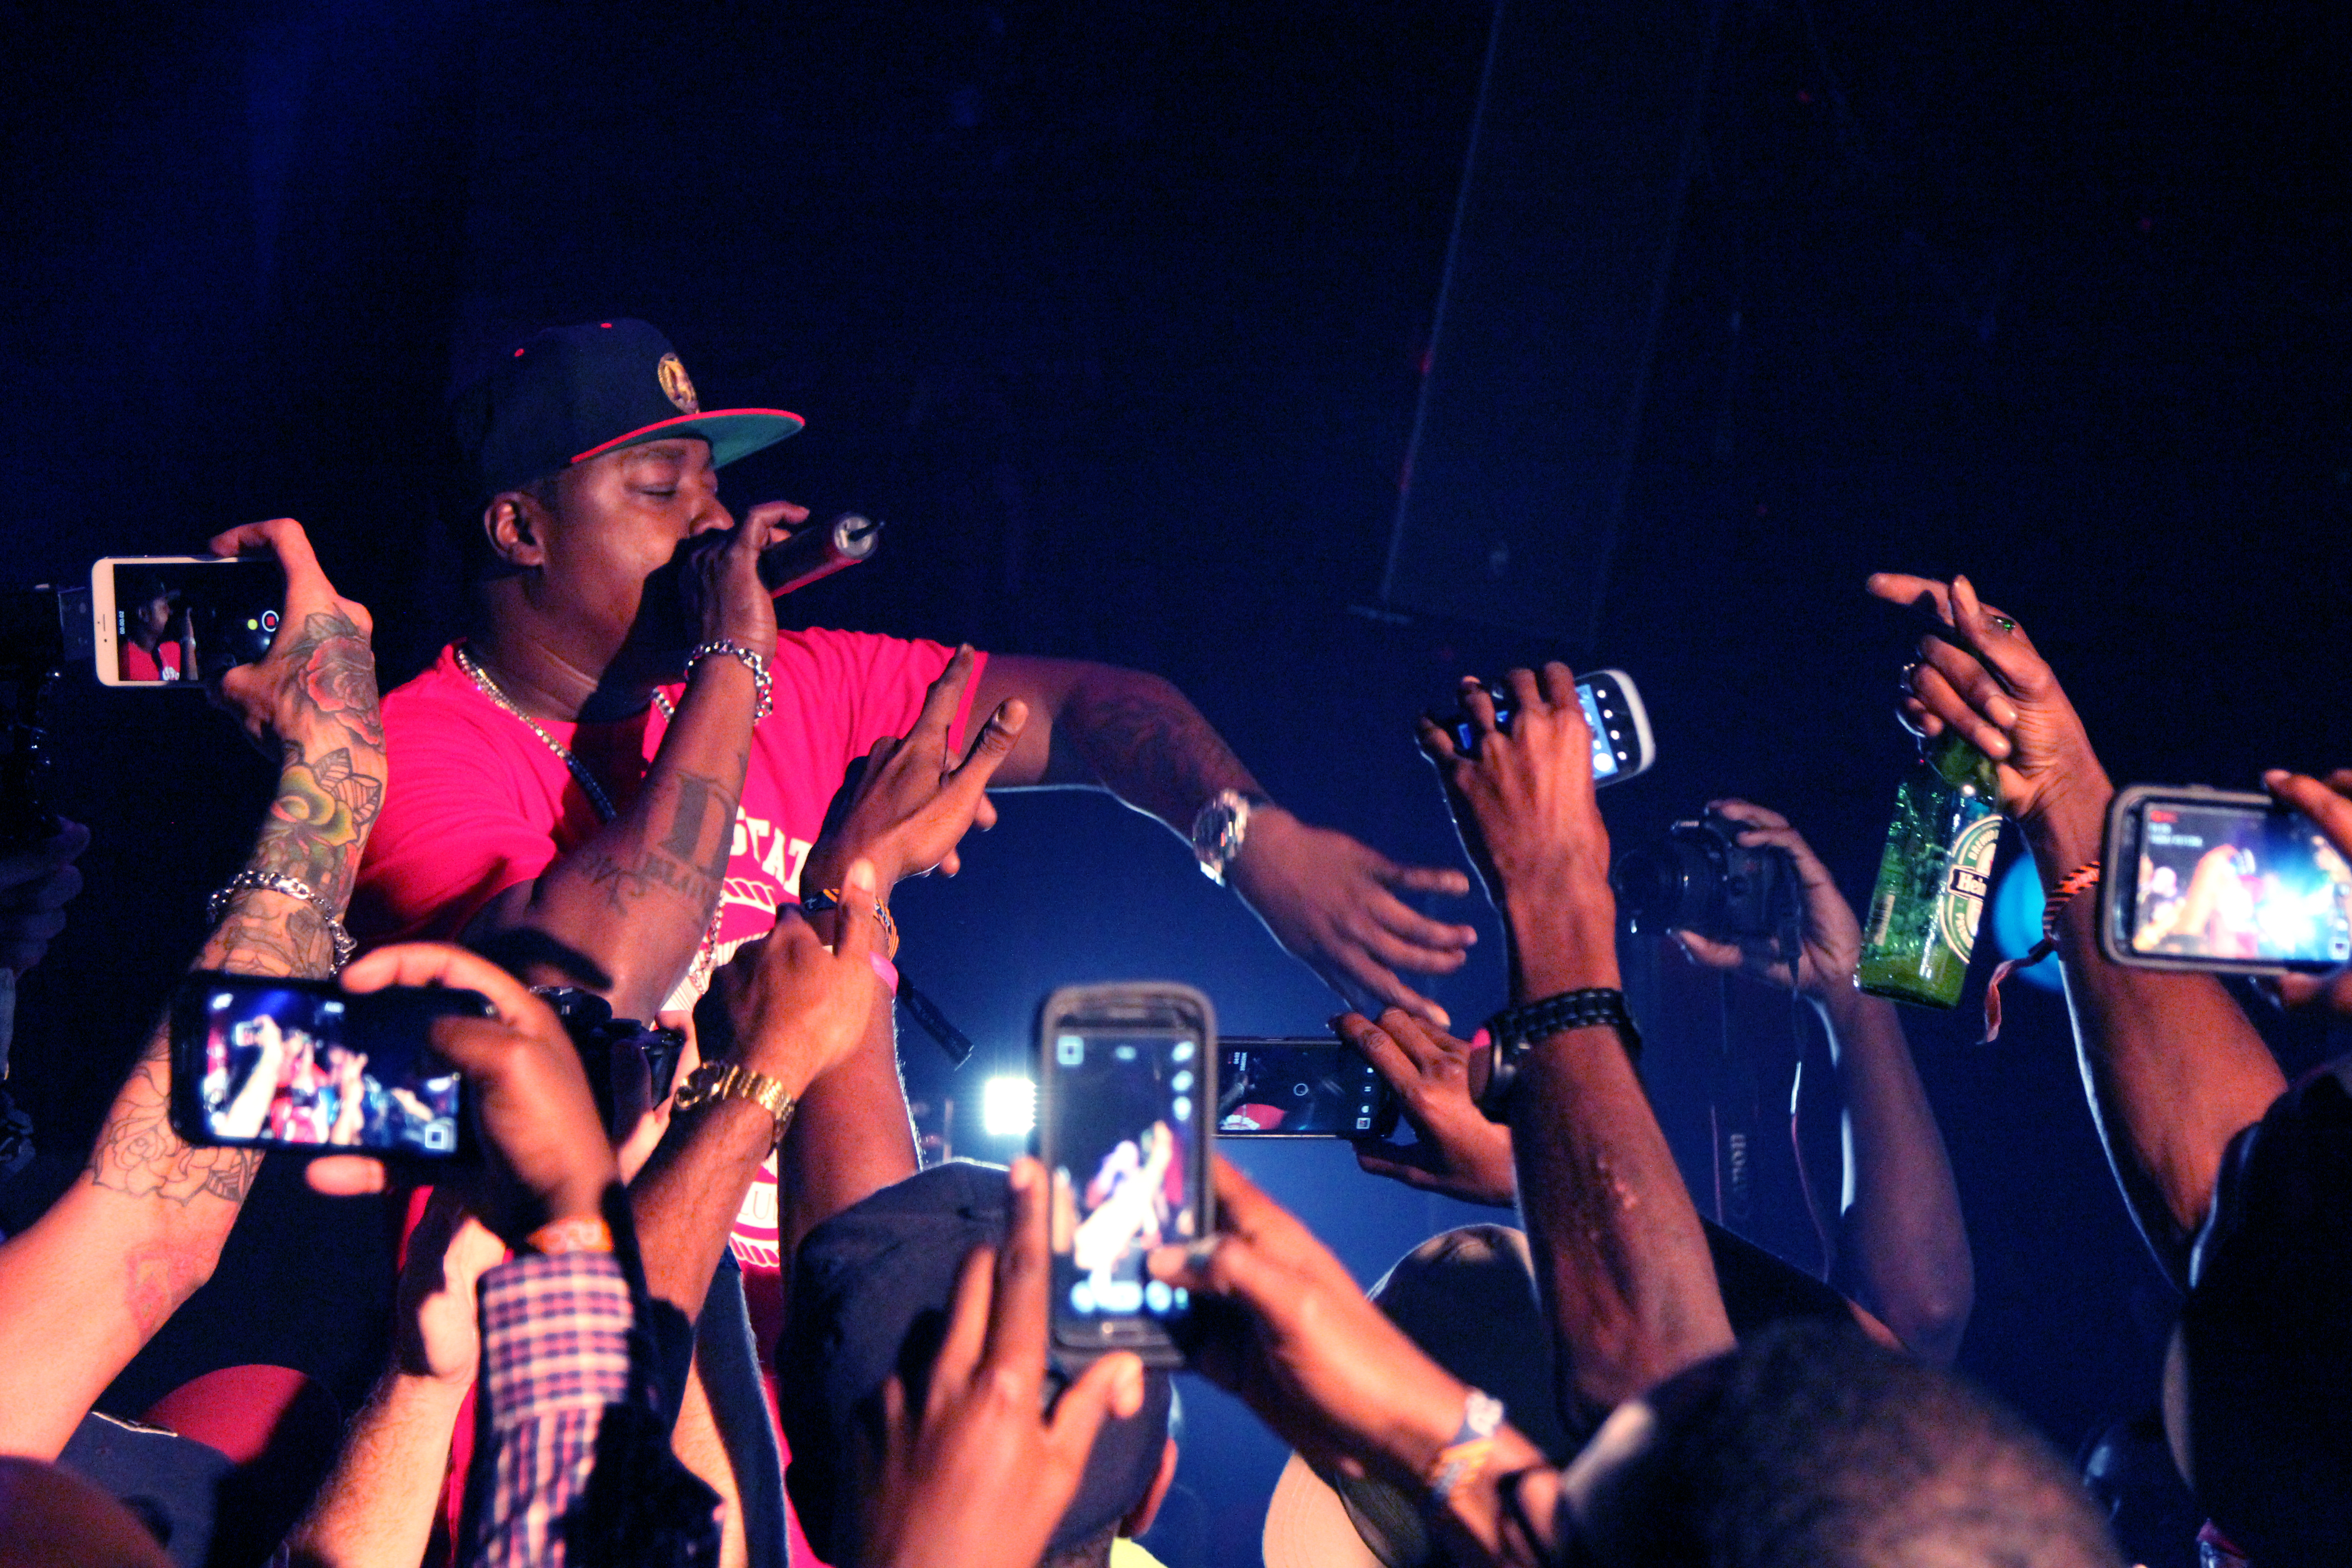 LIVE-performance-close-jadakiss-the-lox-treated